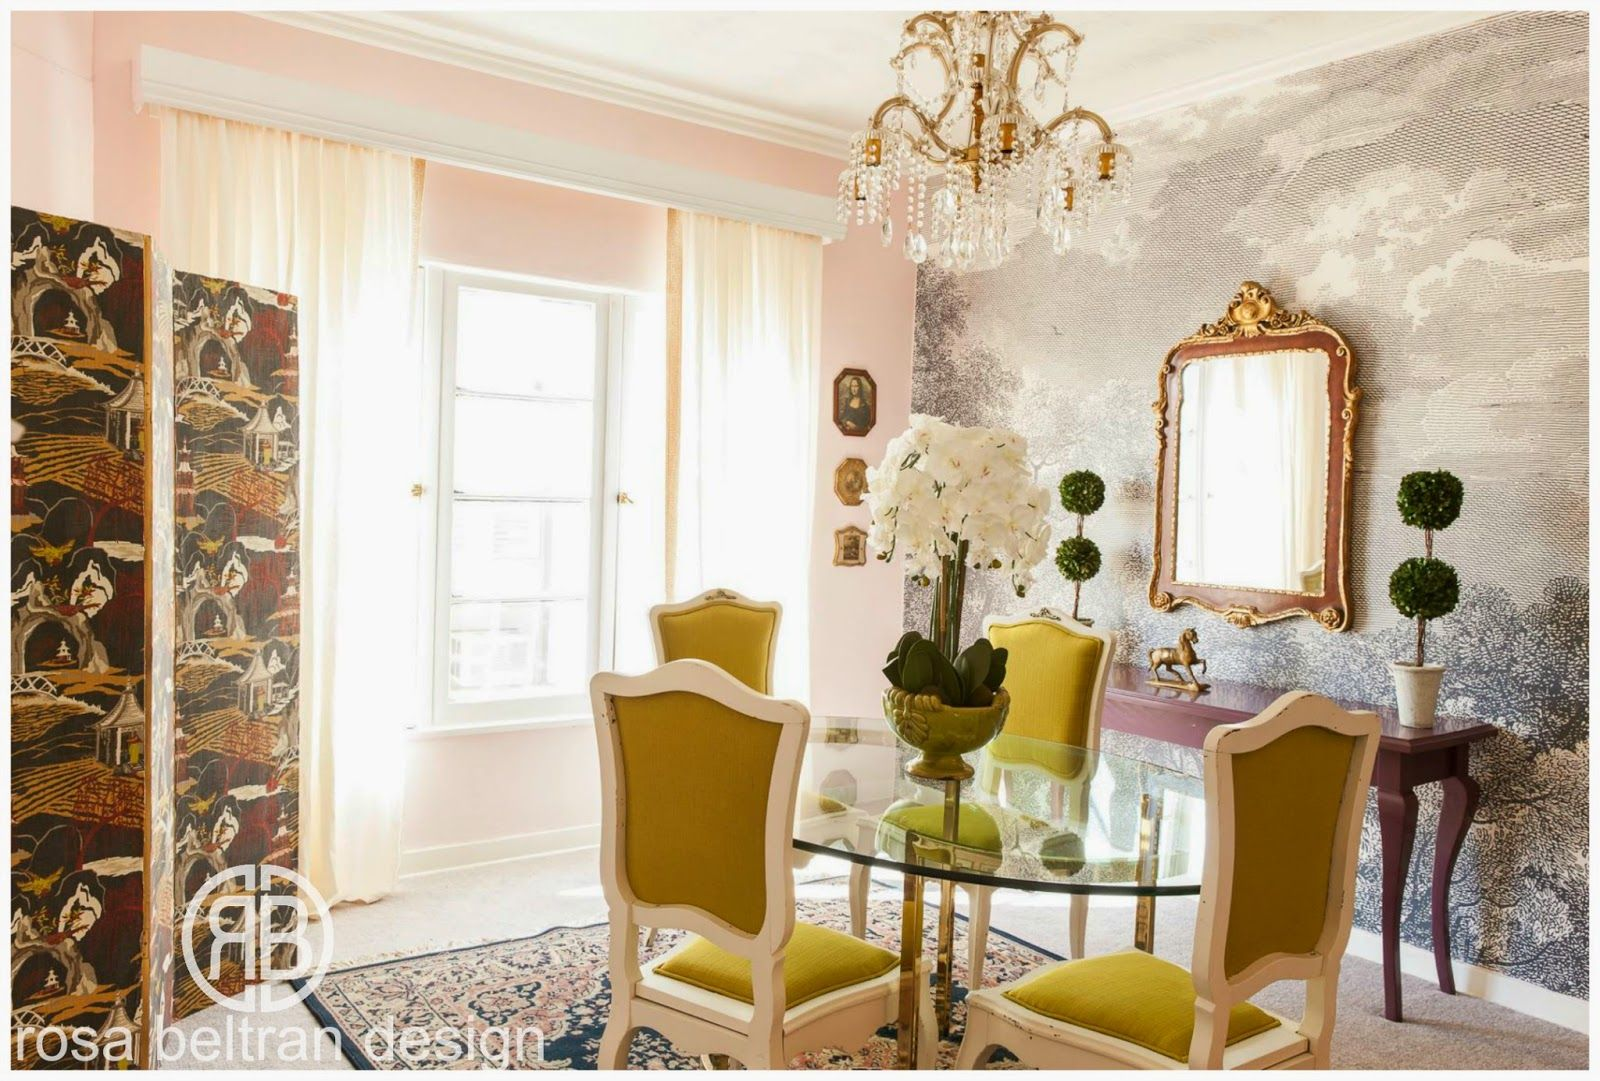 Rosa Beltran Design {Blog} DINING ROOM BY ROSA BELTRAN DESIGN LOS ANGELES  One Room